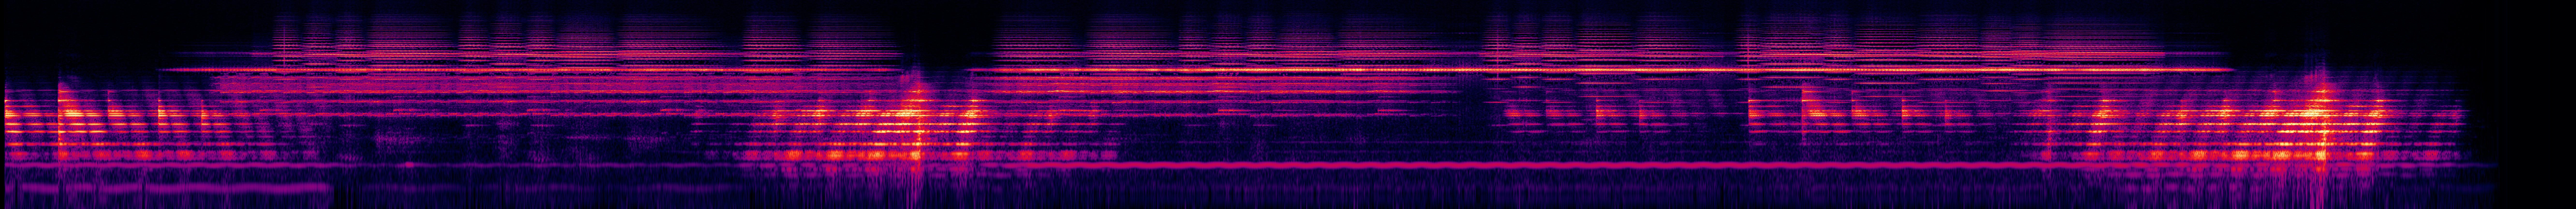 Blue Veils and Golden Sands - Spectrogram.jpg